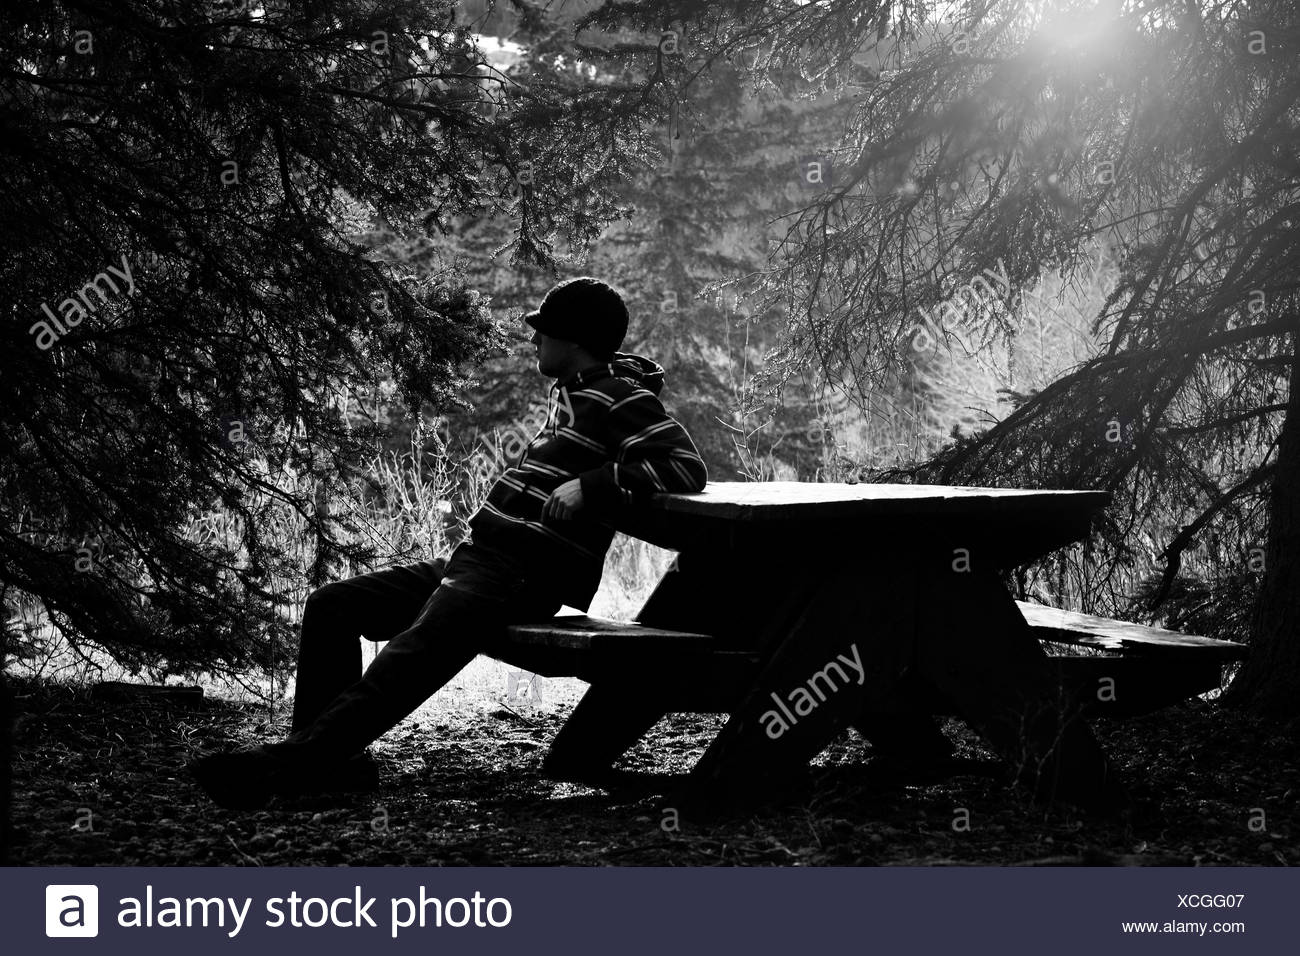 Man sitting; Man resting on picnic table - Stock Image